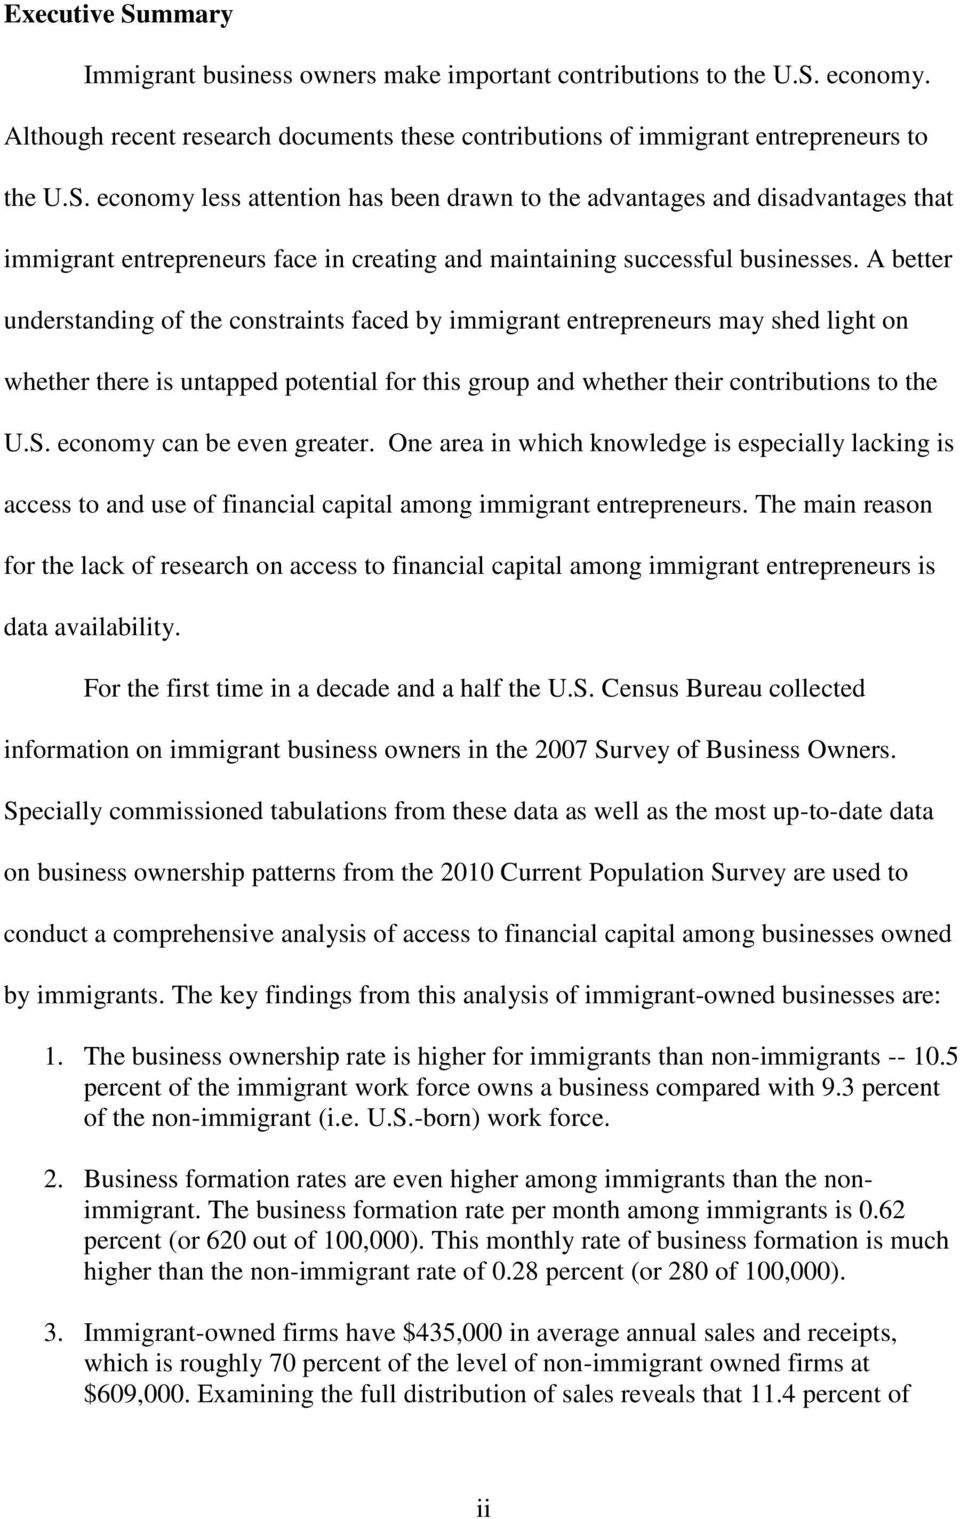 economy can be even greater. One area in which knowledge is especially lacking is access to and use of financial capital among immigrant entrepreneurs.